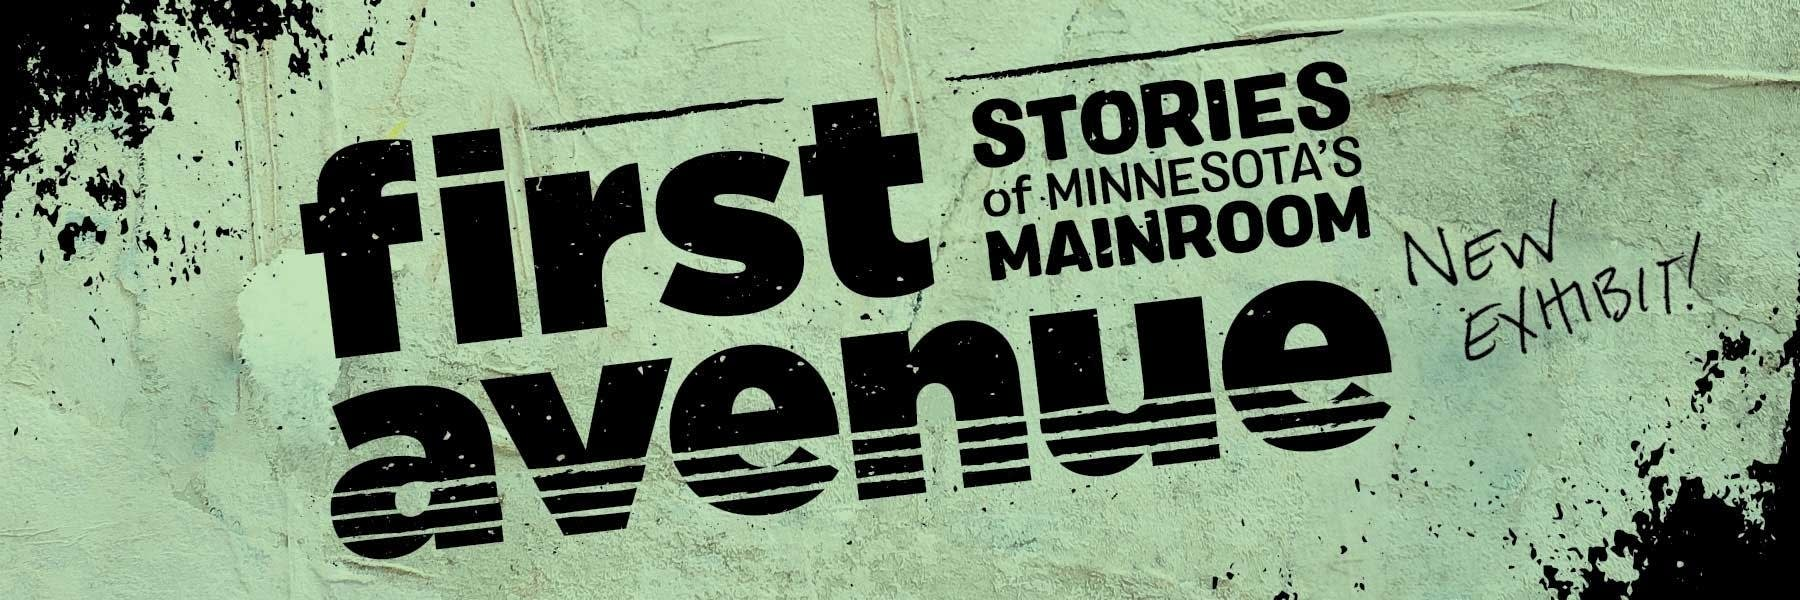 First Avenue Stories of Minnesota's Mainroom